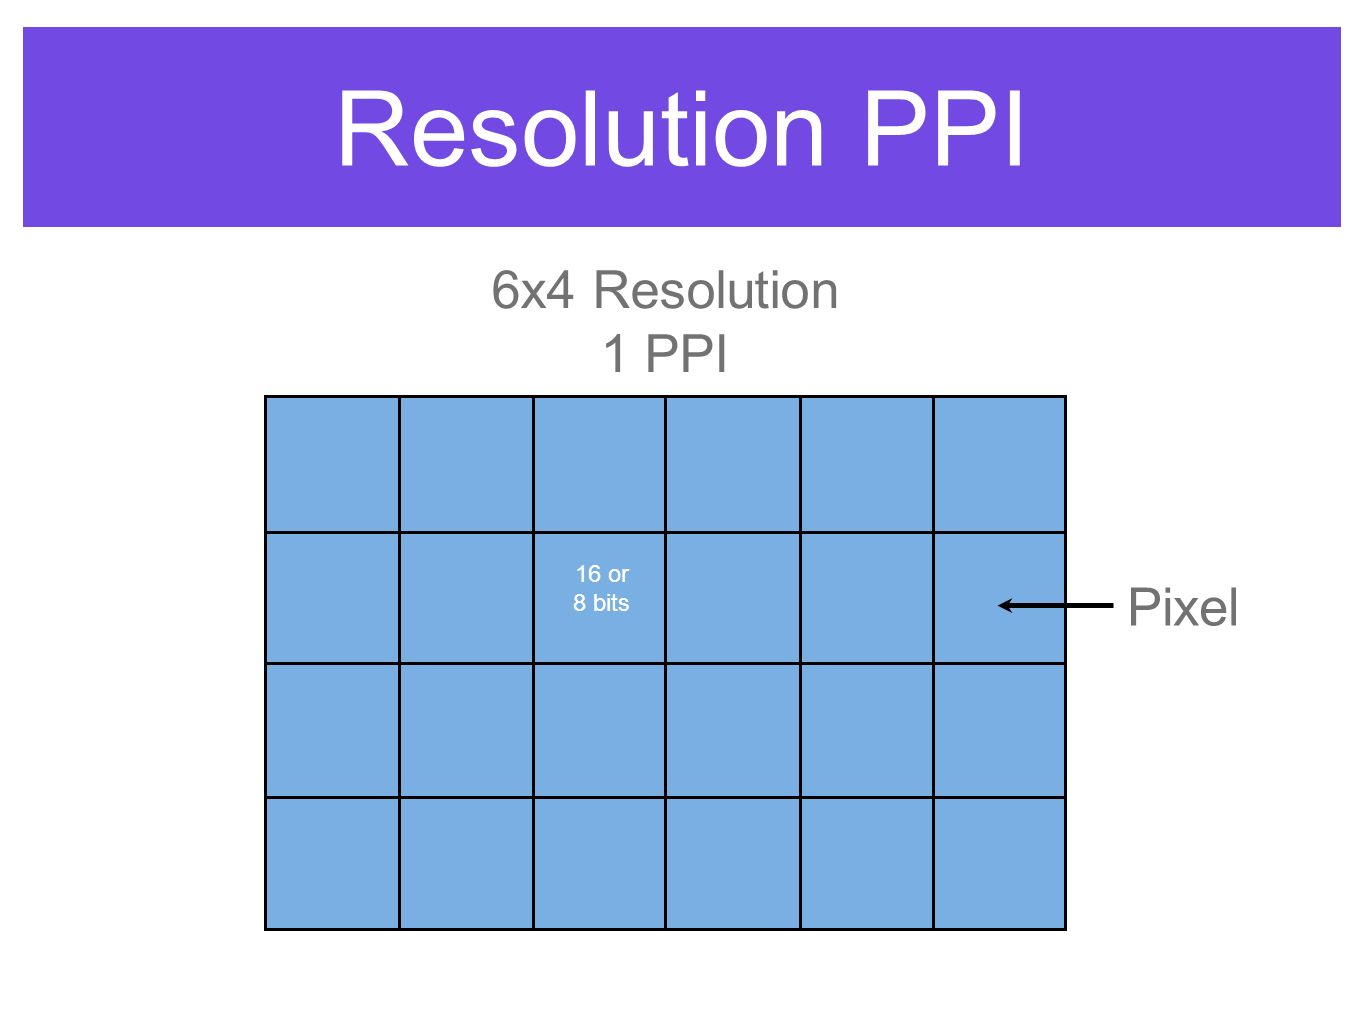 Resolution PPI Pixel 6x4 Resolution 1 PPI 16 or 8 bits